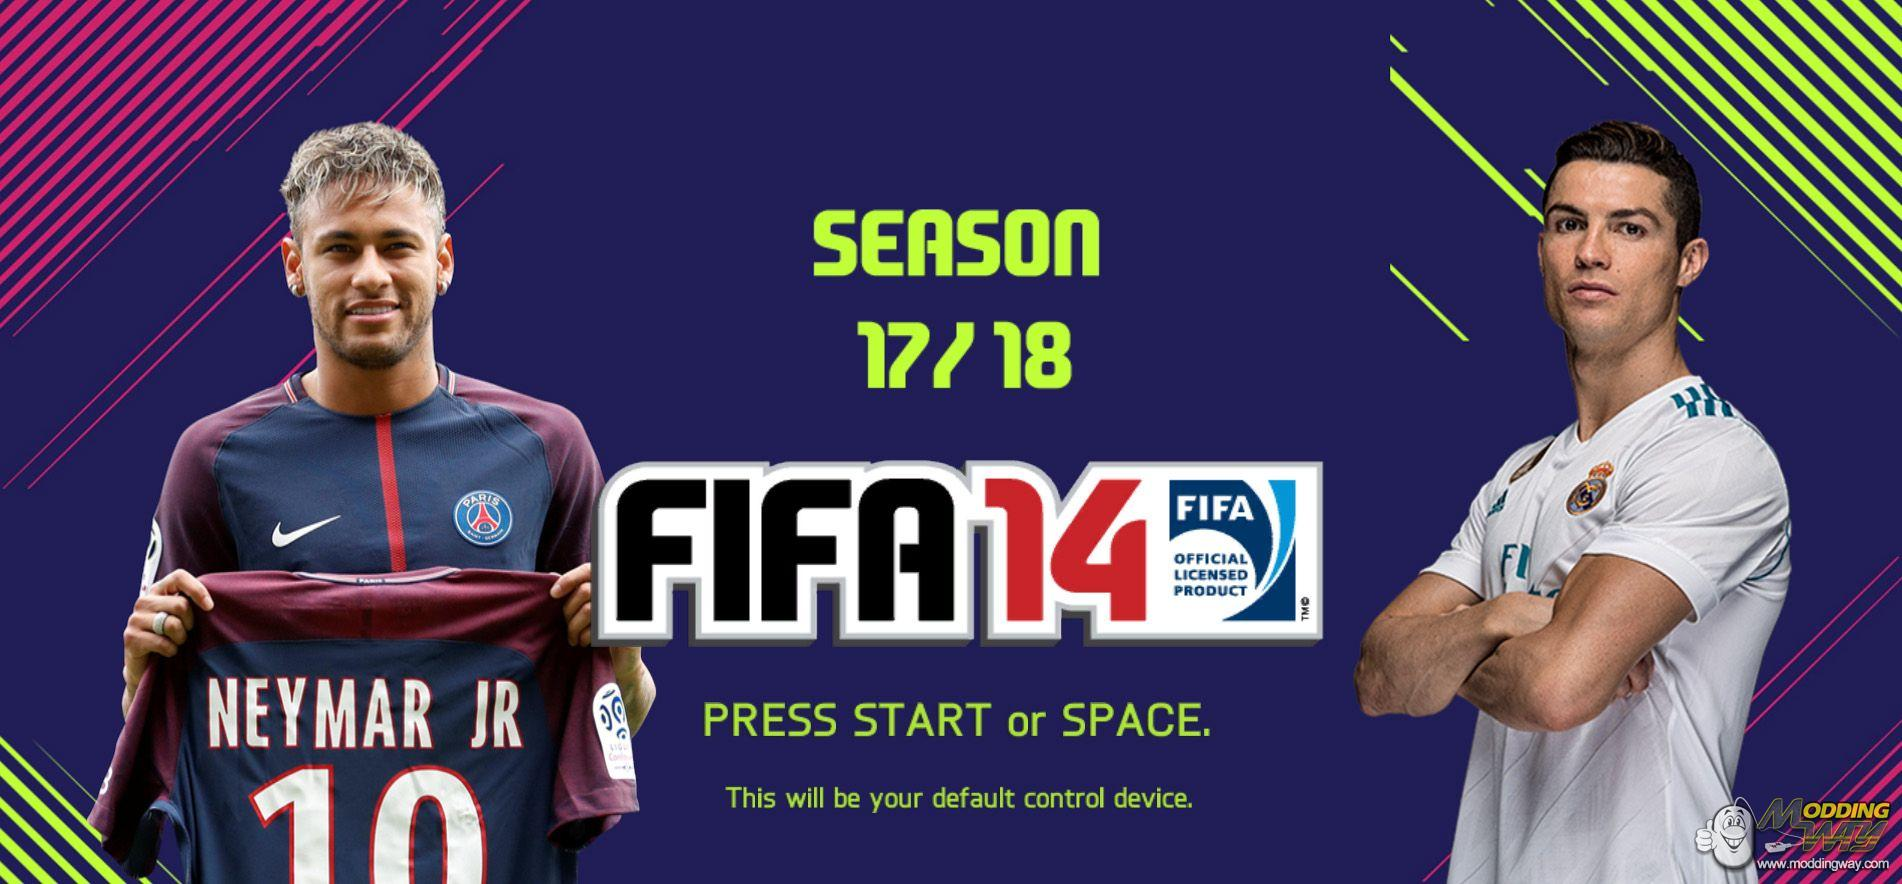 7014a56a946 FIFA 14 ModdingWay Mod All In One 17.5.0 - FIFA 14 Video Game at ...